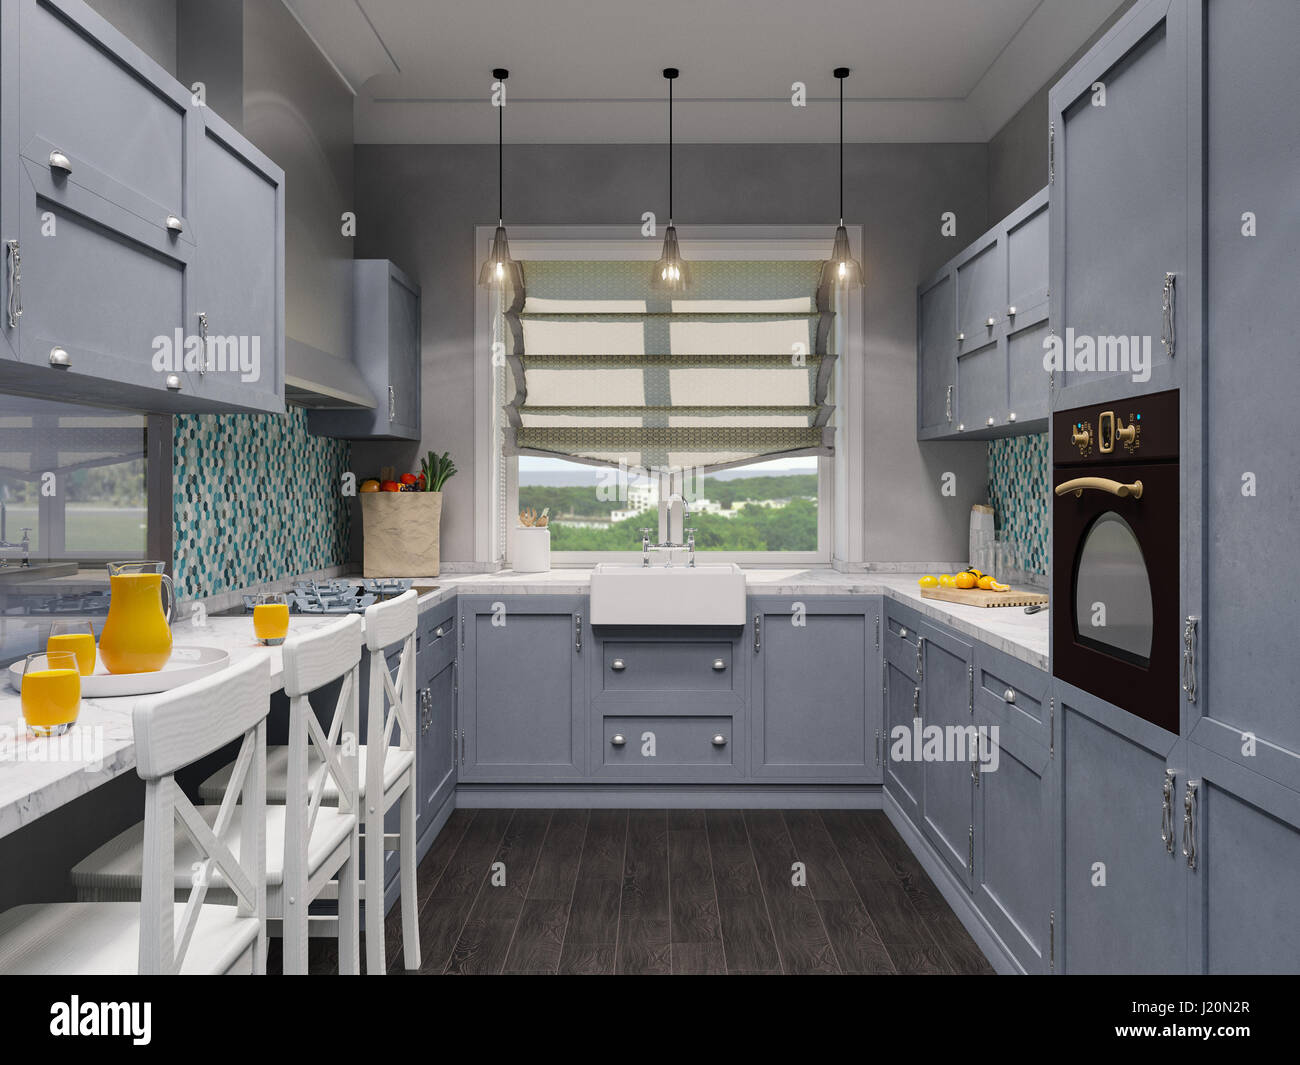 3d illustration of the interior design of the beautiful kitchen in a classic style render the visualization of the interior in a modern in gray tones